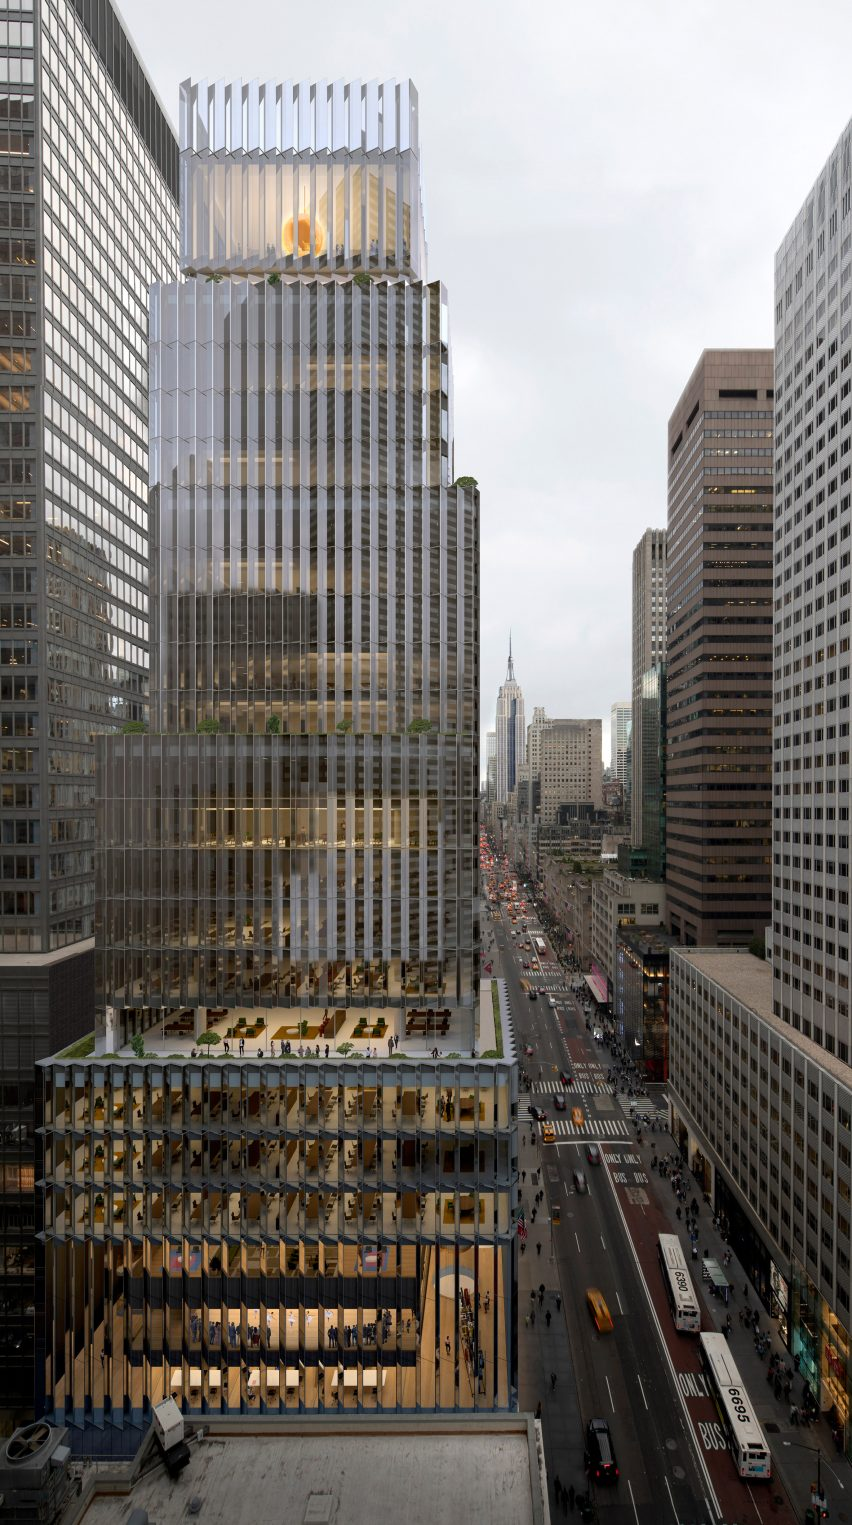 David Chipperfield designs Rolex USA headquarters in New York